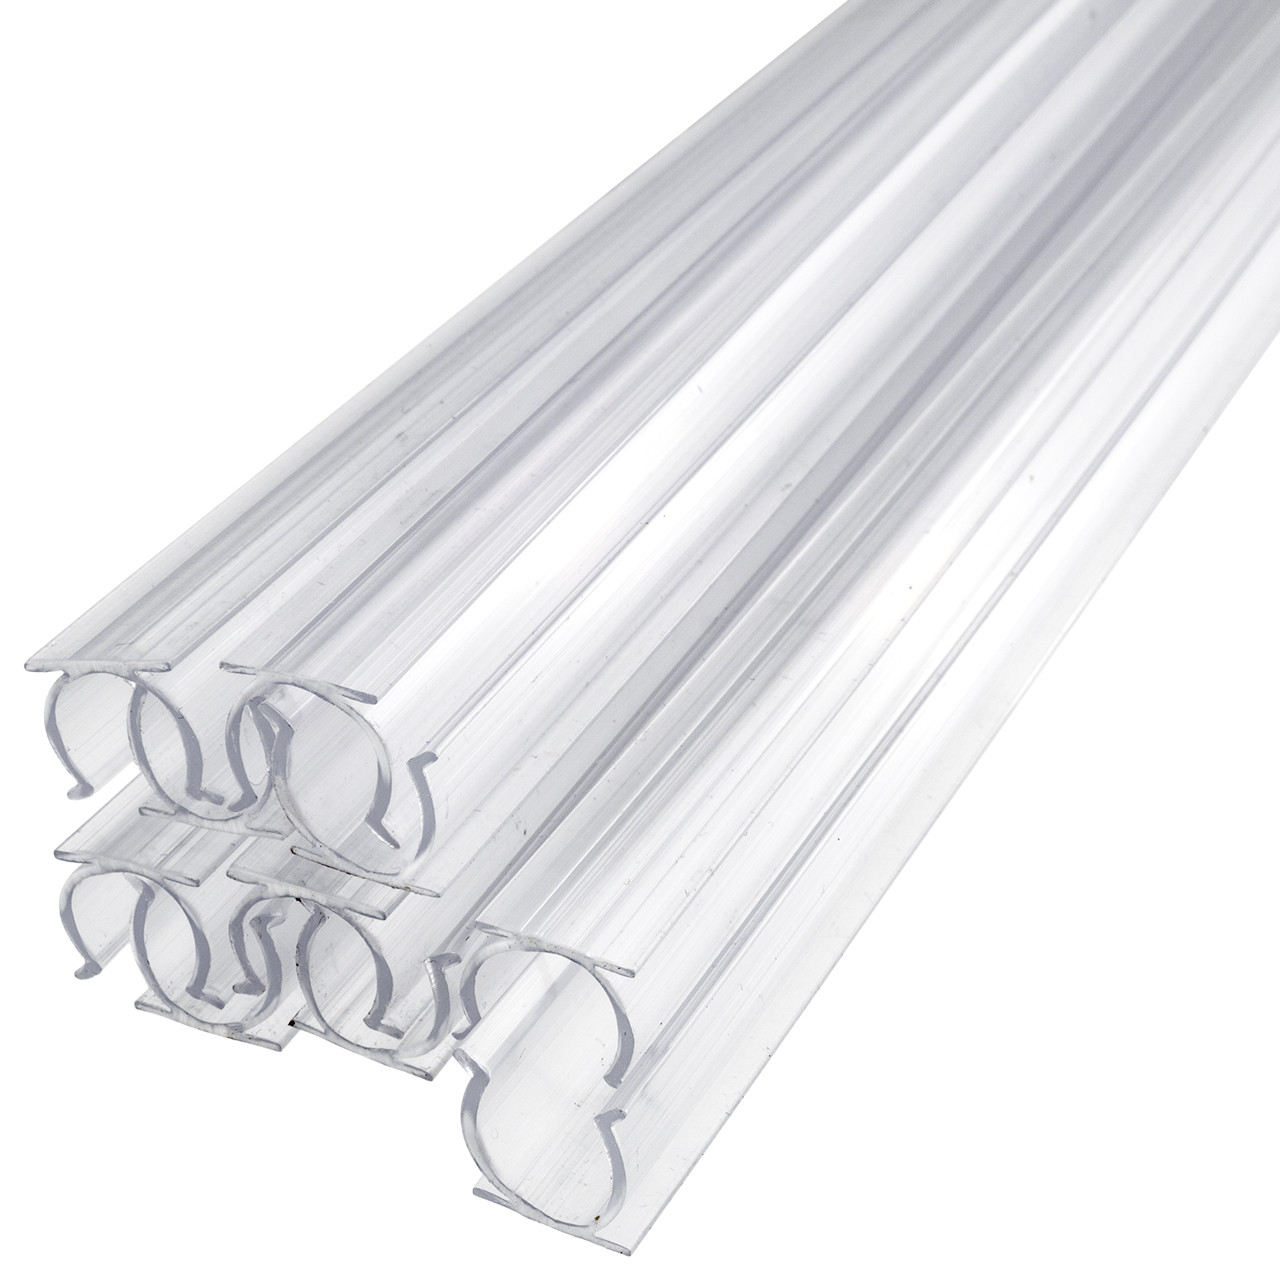 24 Inch x 1/2 Inch Rope Light Mounting Track - Clear PVC Channel (10 Pack)  - 12/120 Volt